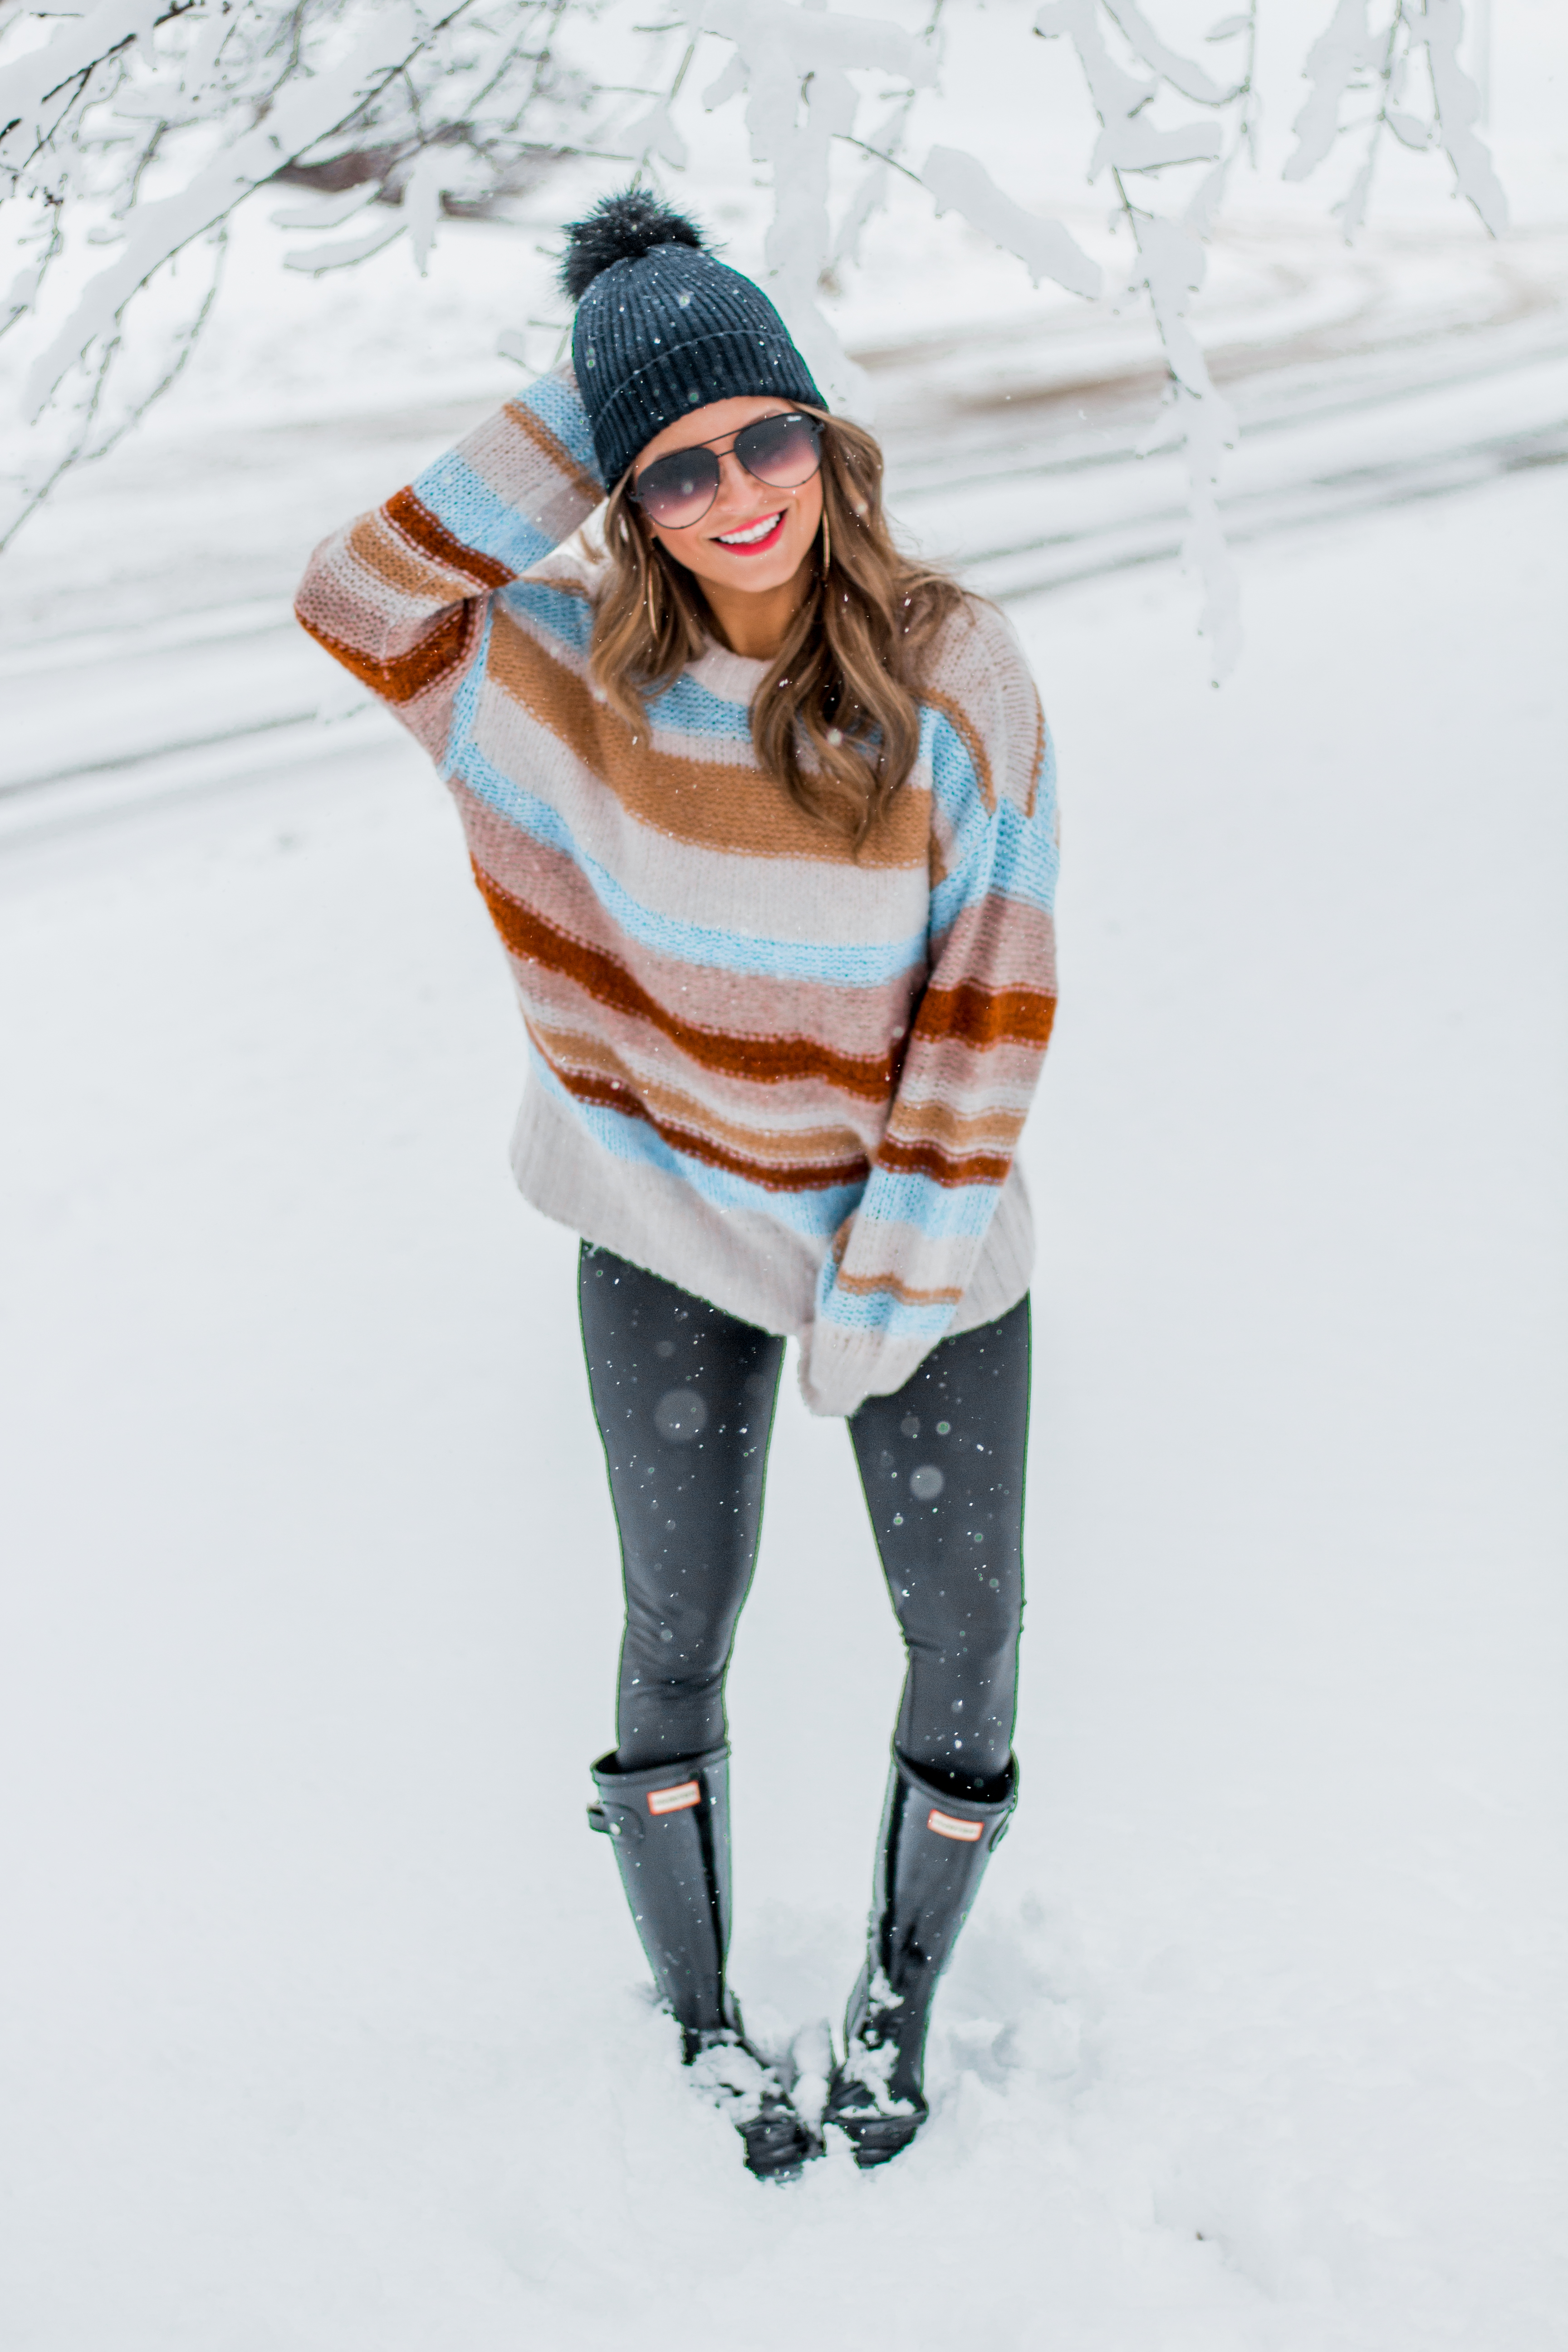 Women's Fashion - American Eagle Sweater - Hunter Boots - Beanie - Snow Day - OOTD - Fashion Blogger - Winter Fashion - 2